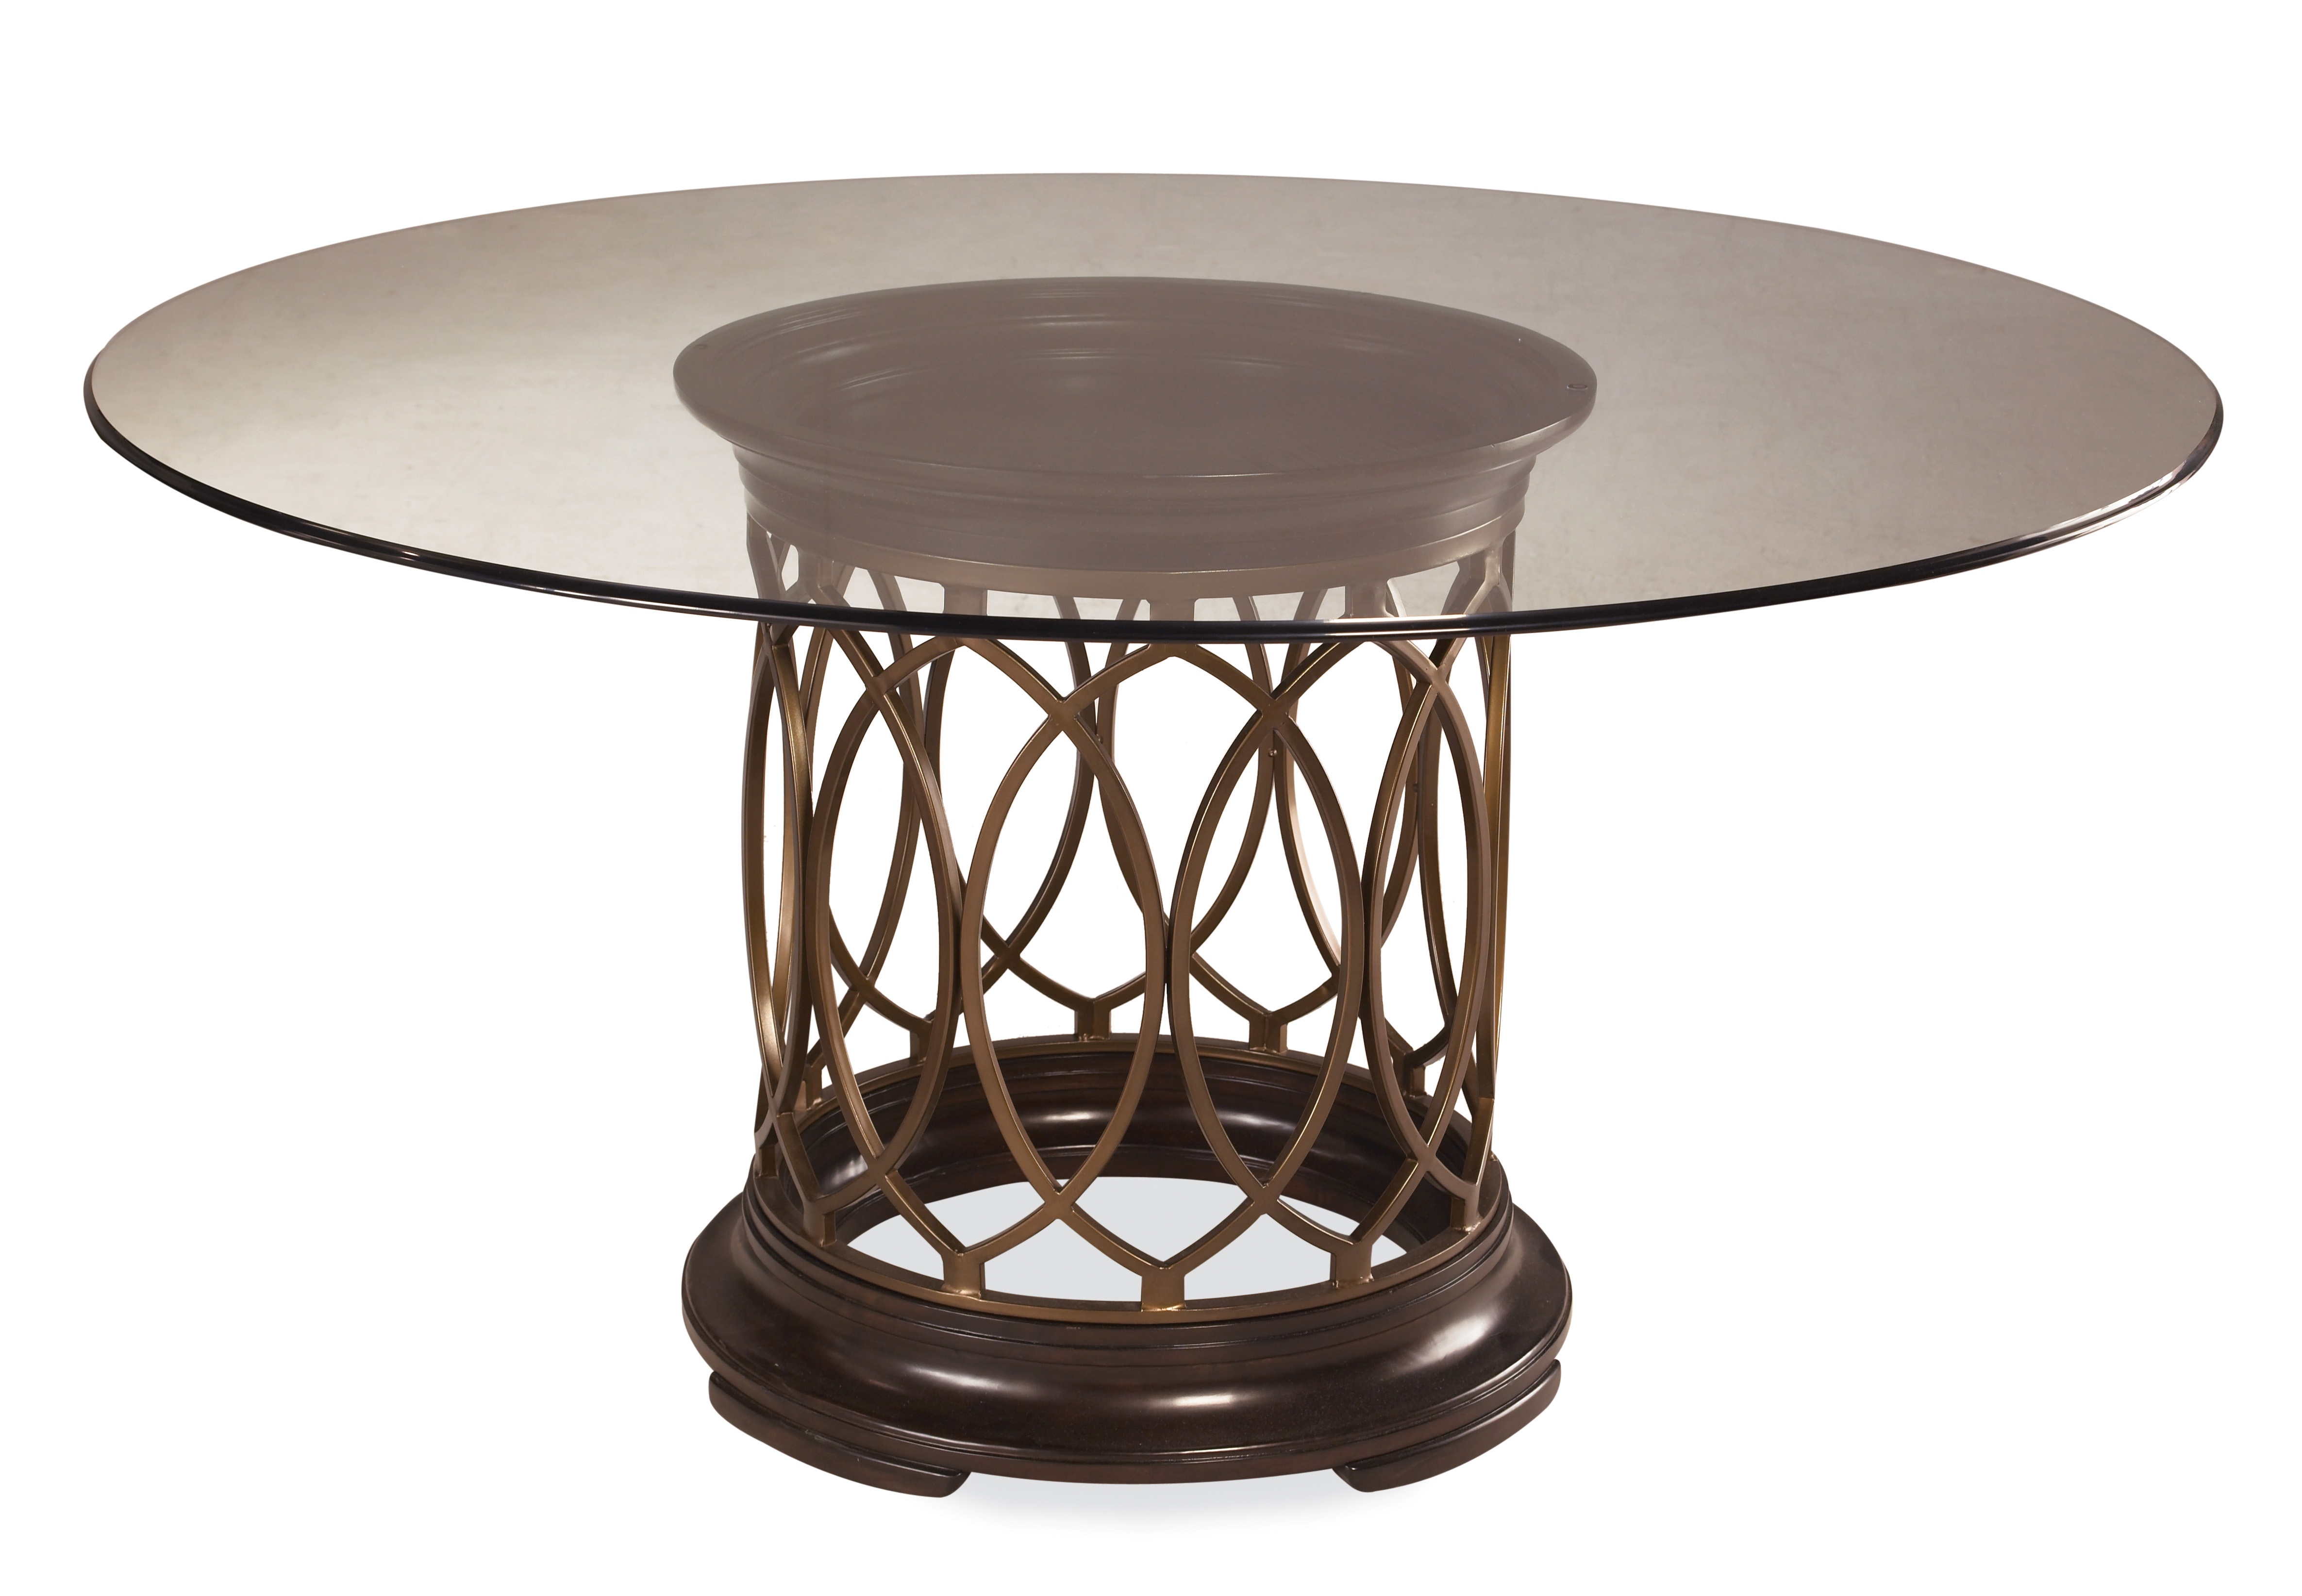 Luxury ART Intrigue Round Glass Top Dining Table round glass top dining table